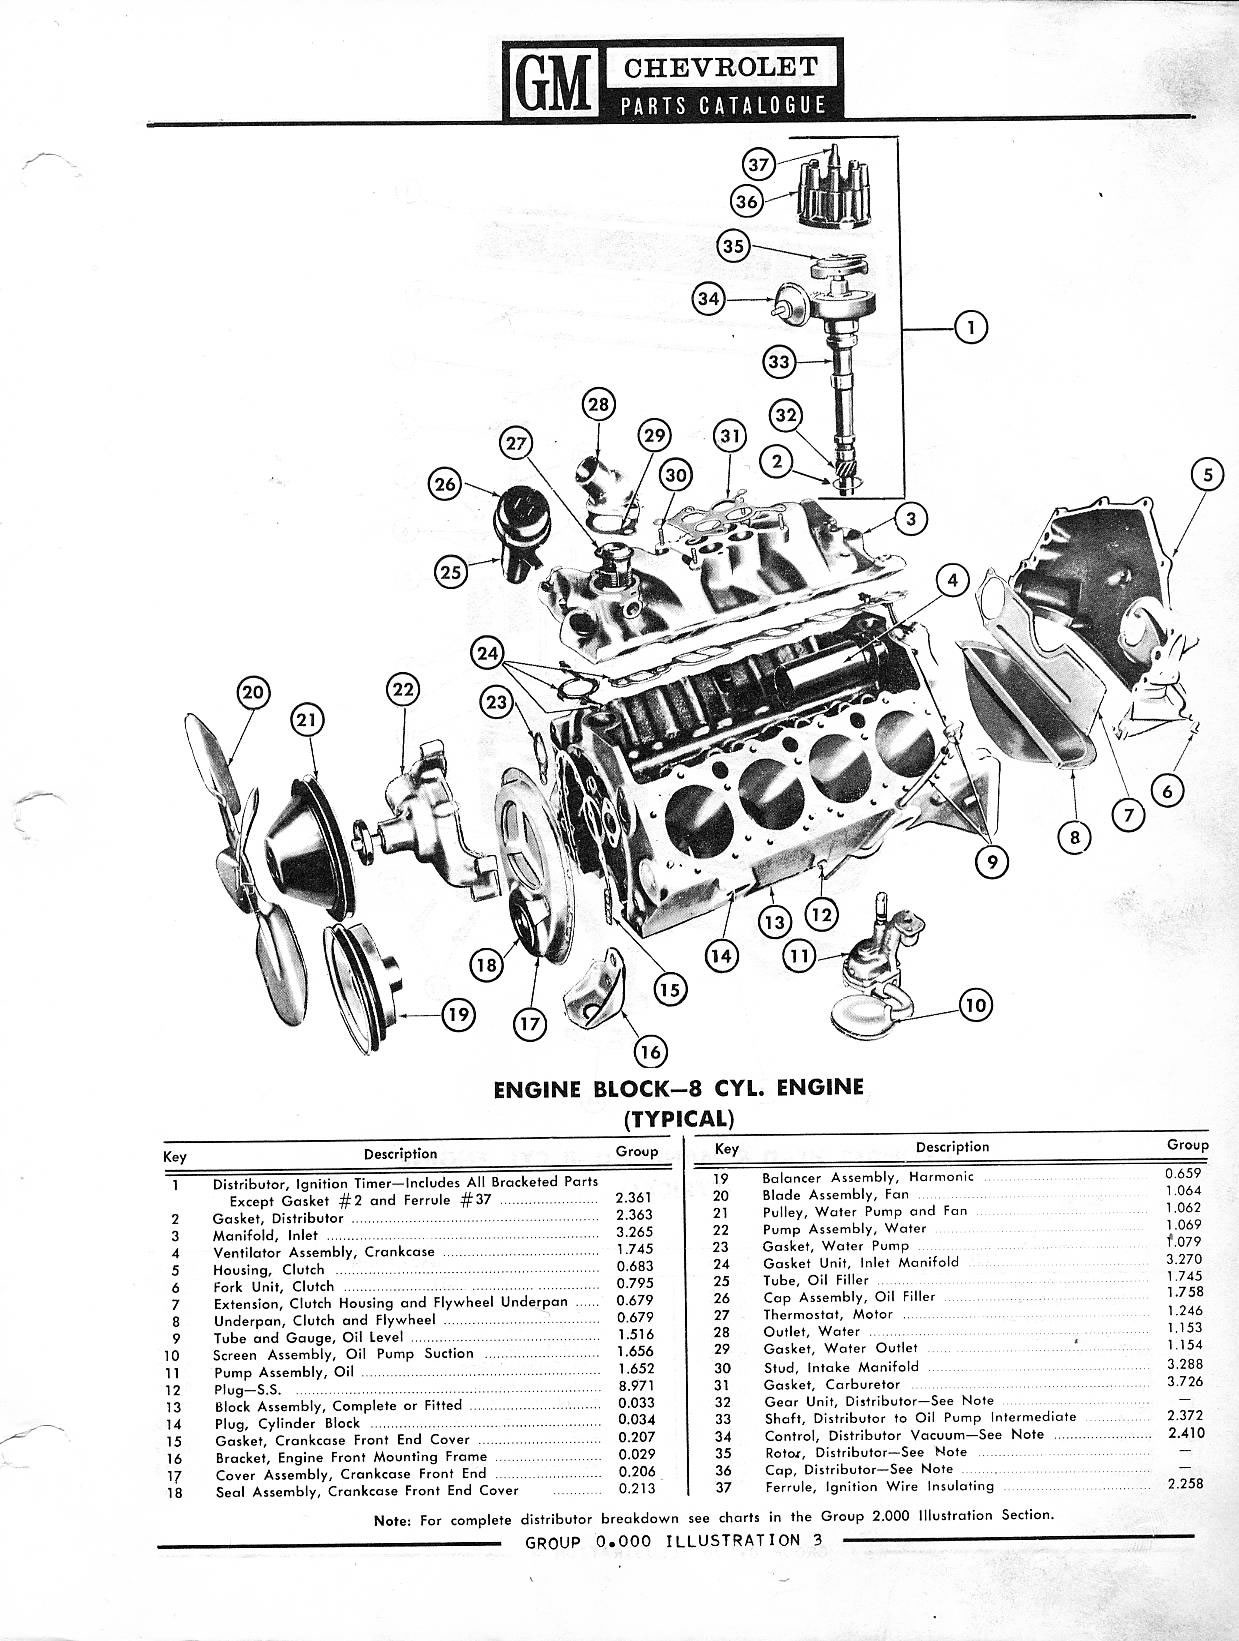 gm engine parts online  gm  free engine image for user